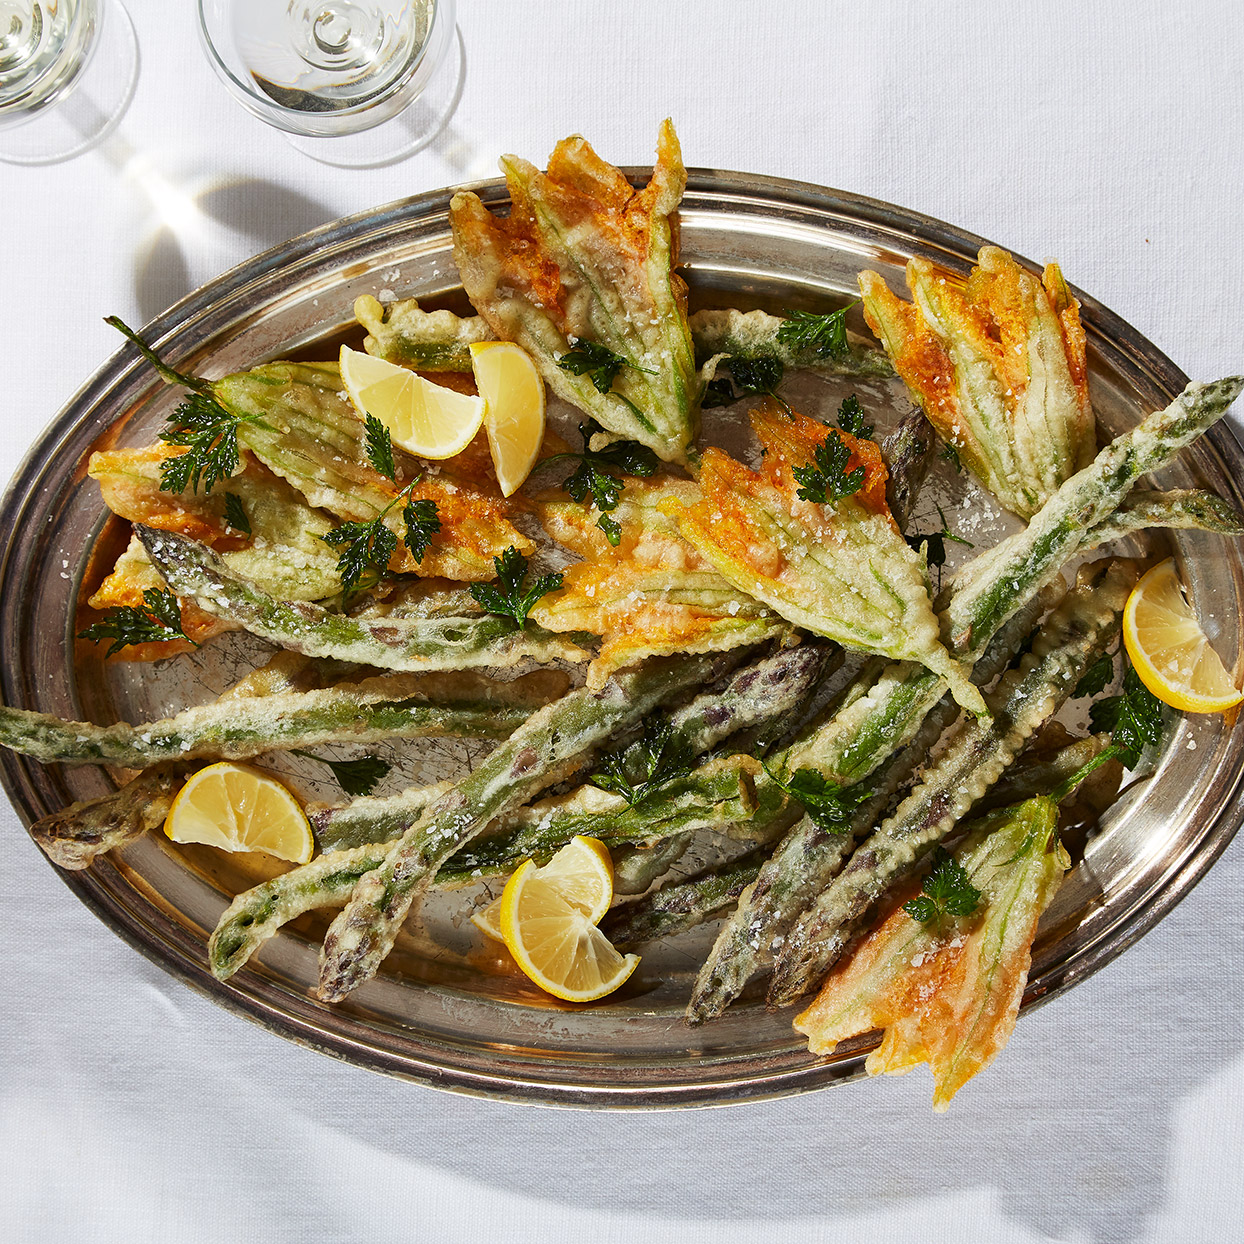 Fritto misto, mixed fried foods, is a typical Italian nibble. Be sure to salt the asparagus and blossoms as soon as they're out of the oil so that the crystals will stick to the food. Source: EatingWell Magazine, March 2020